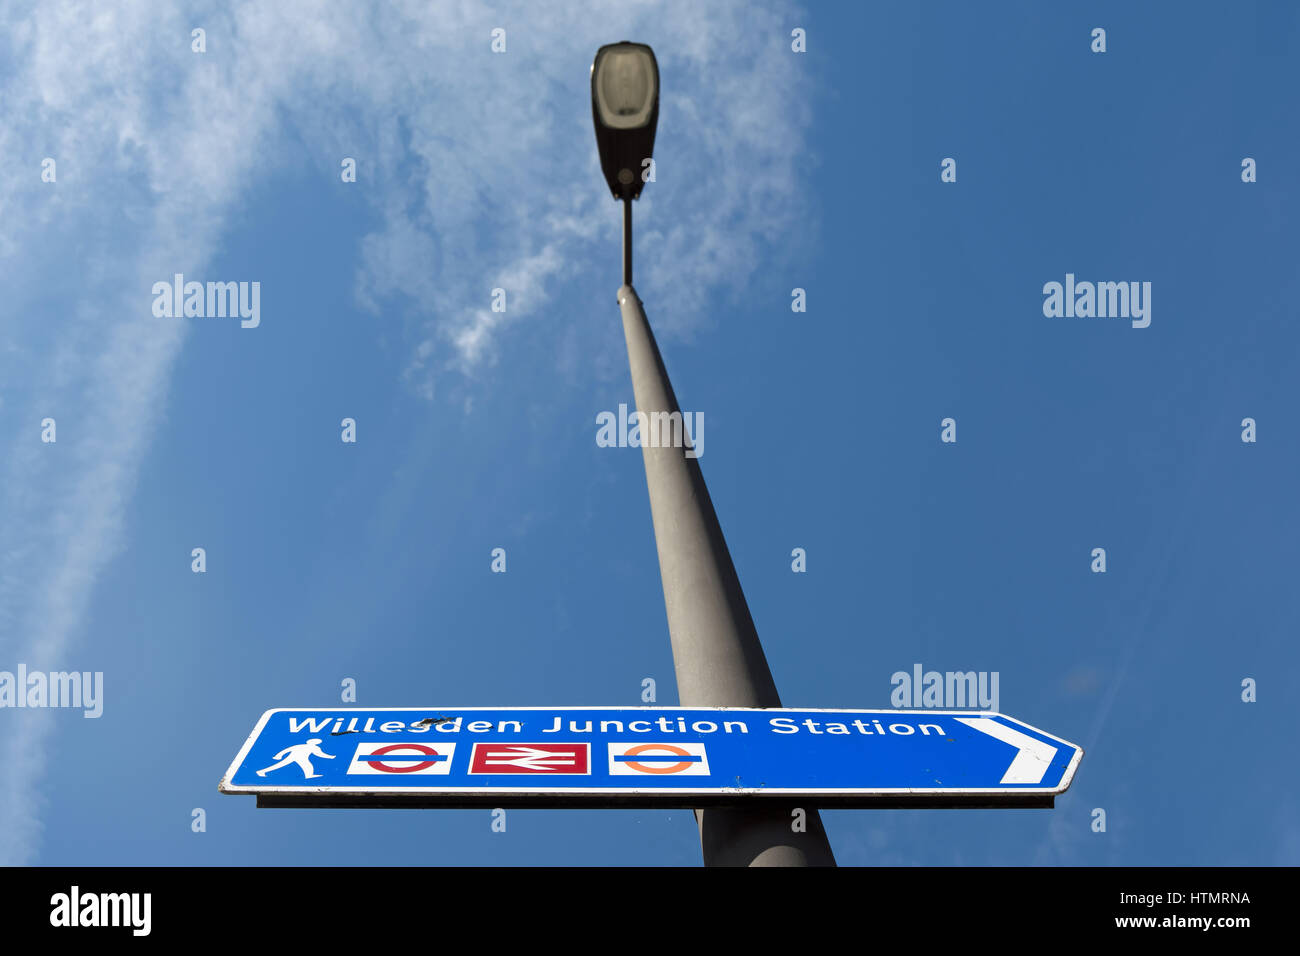 right pointing sign for willesden junction station, west london, england - Stock Image